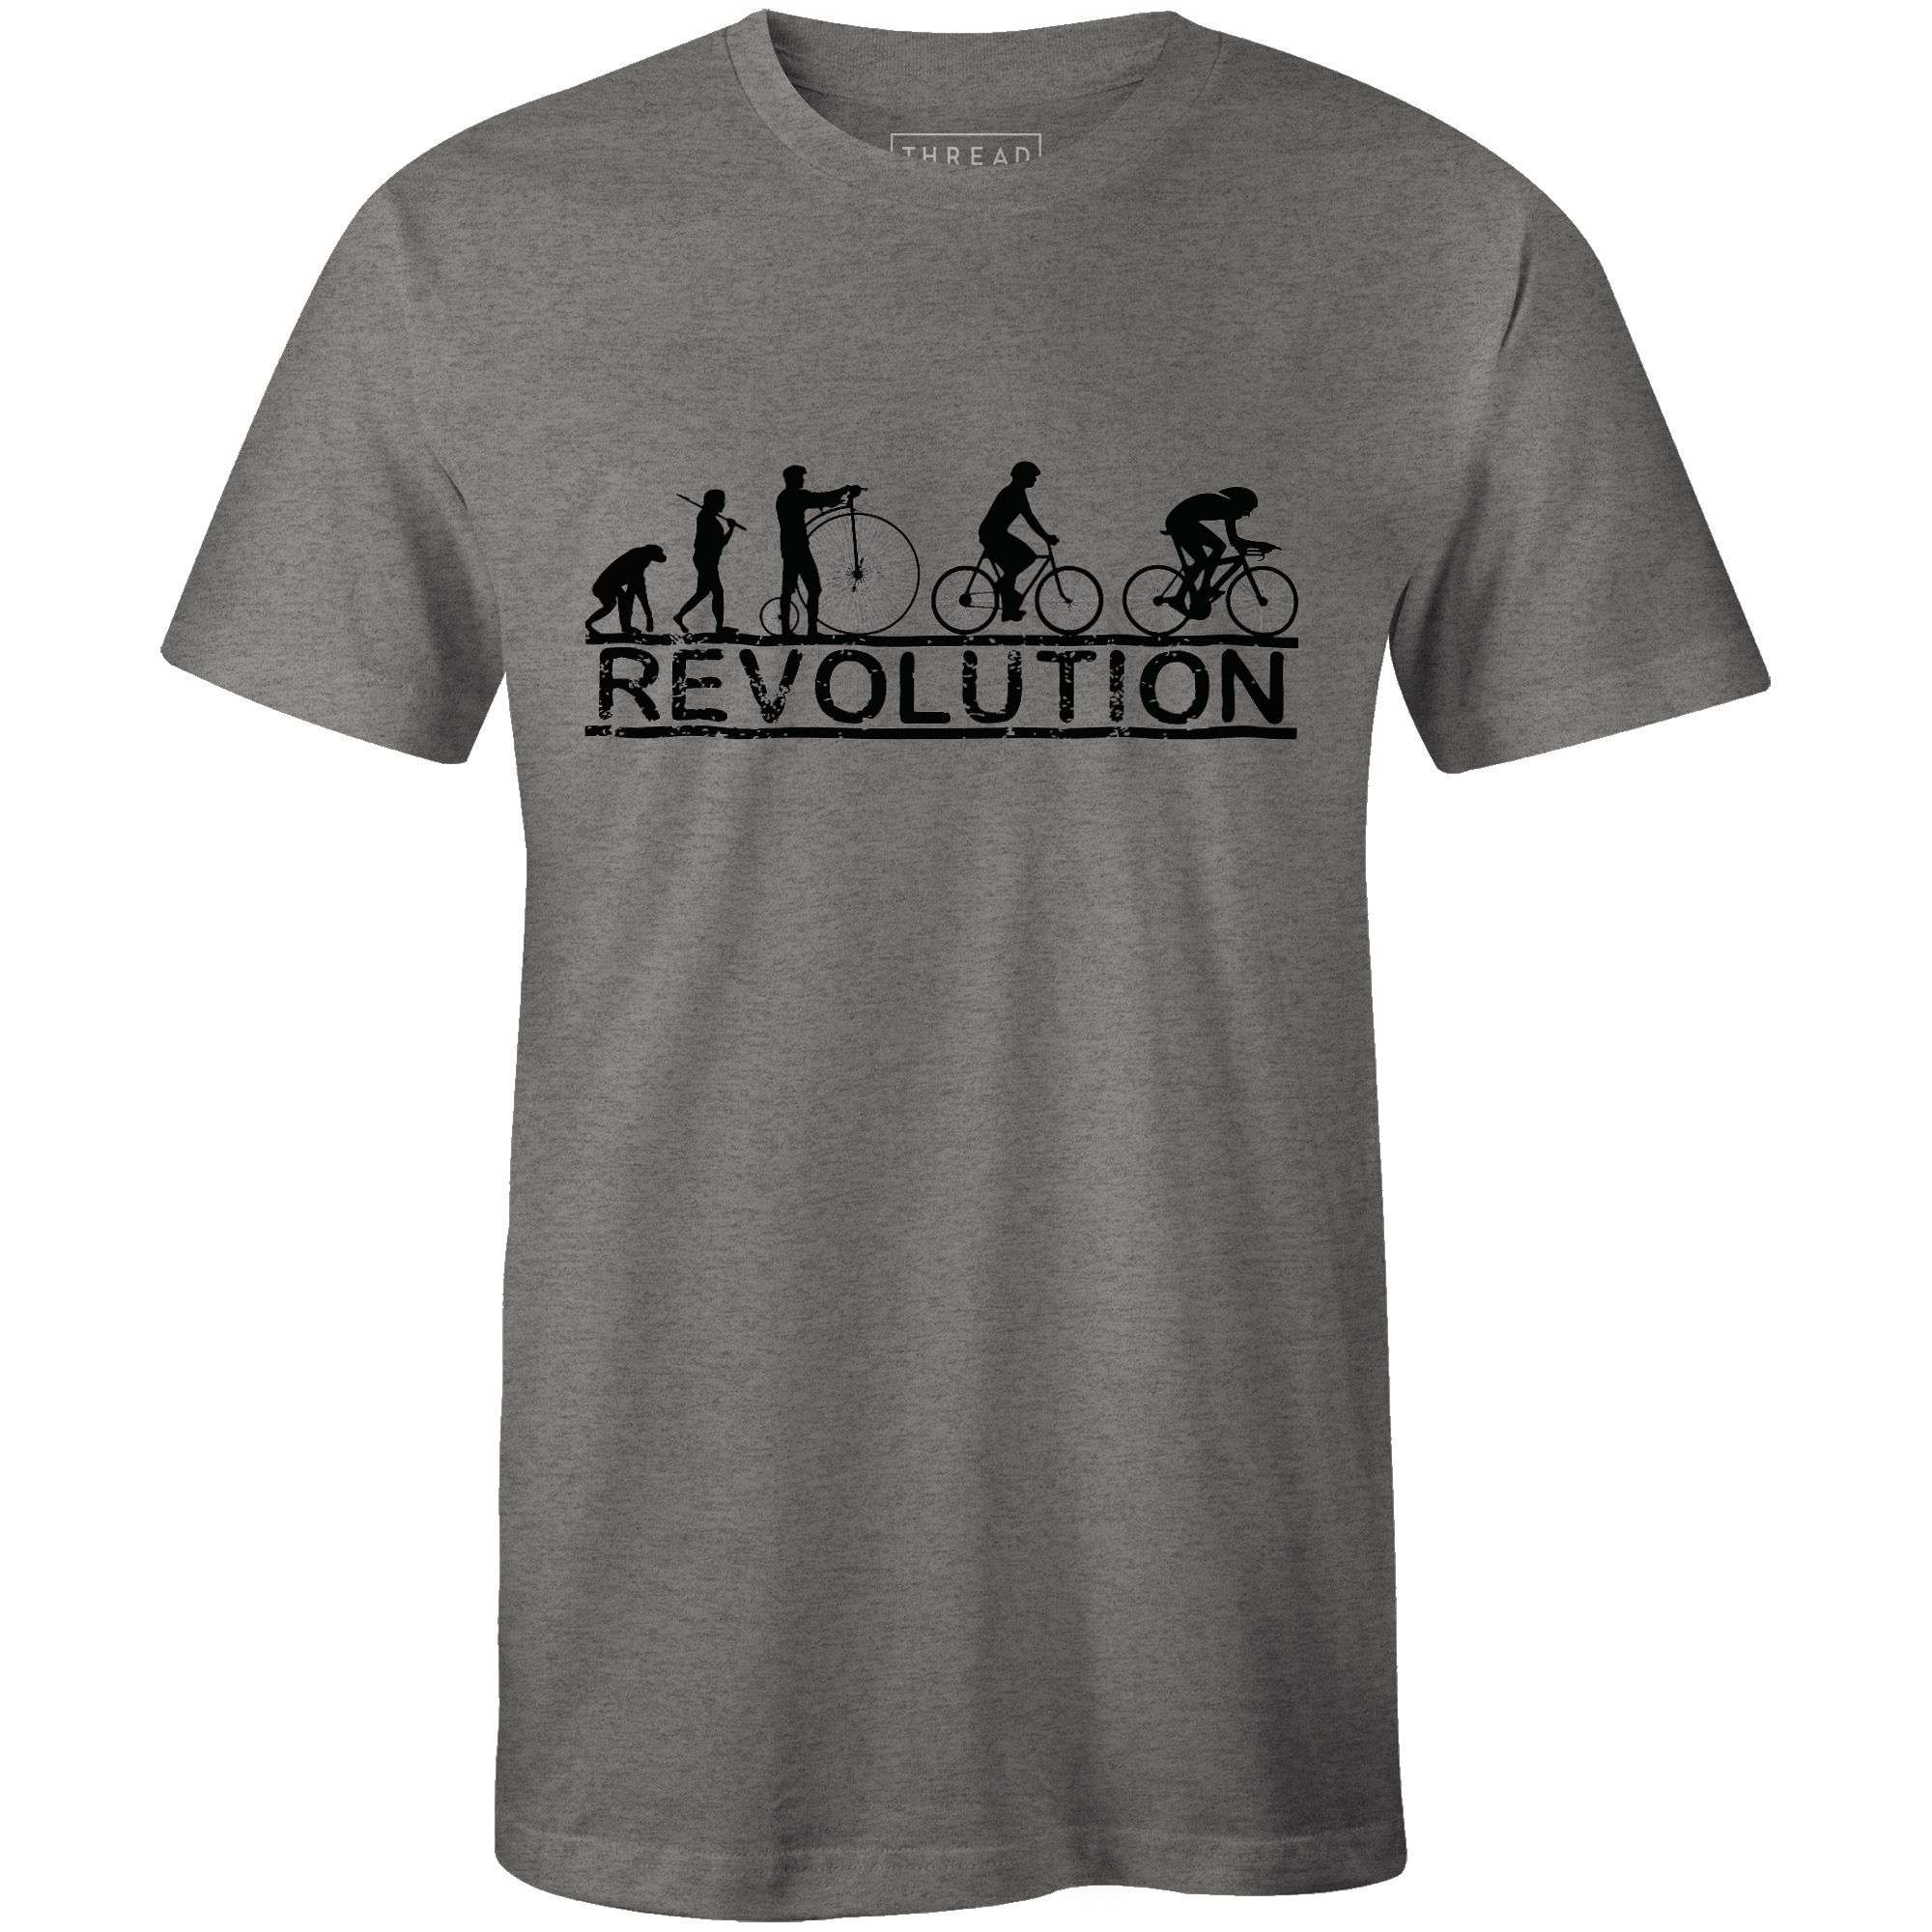 Cycling RevolutionMile24 - THREAD+SPOKE | MTB APPAREL | ROAD BIKING T-SHIRTS | BICYCLE T SHIRTS |